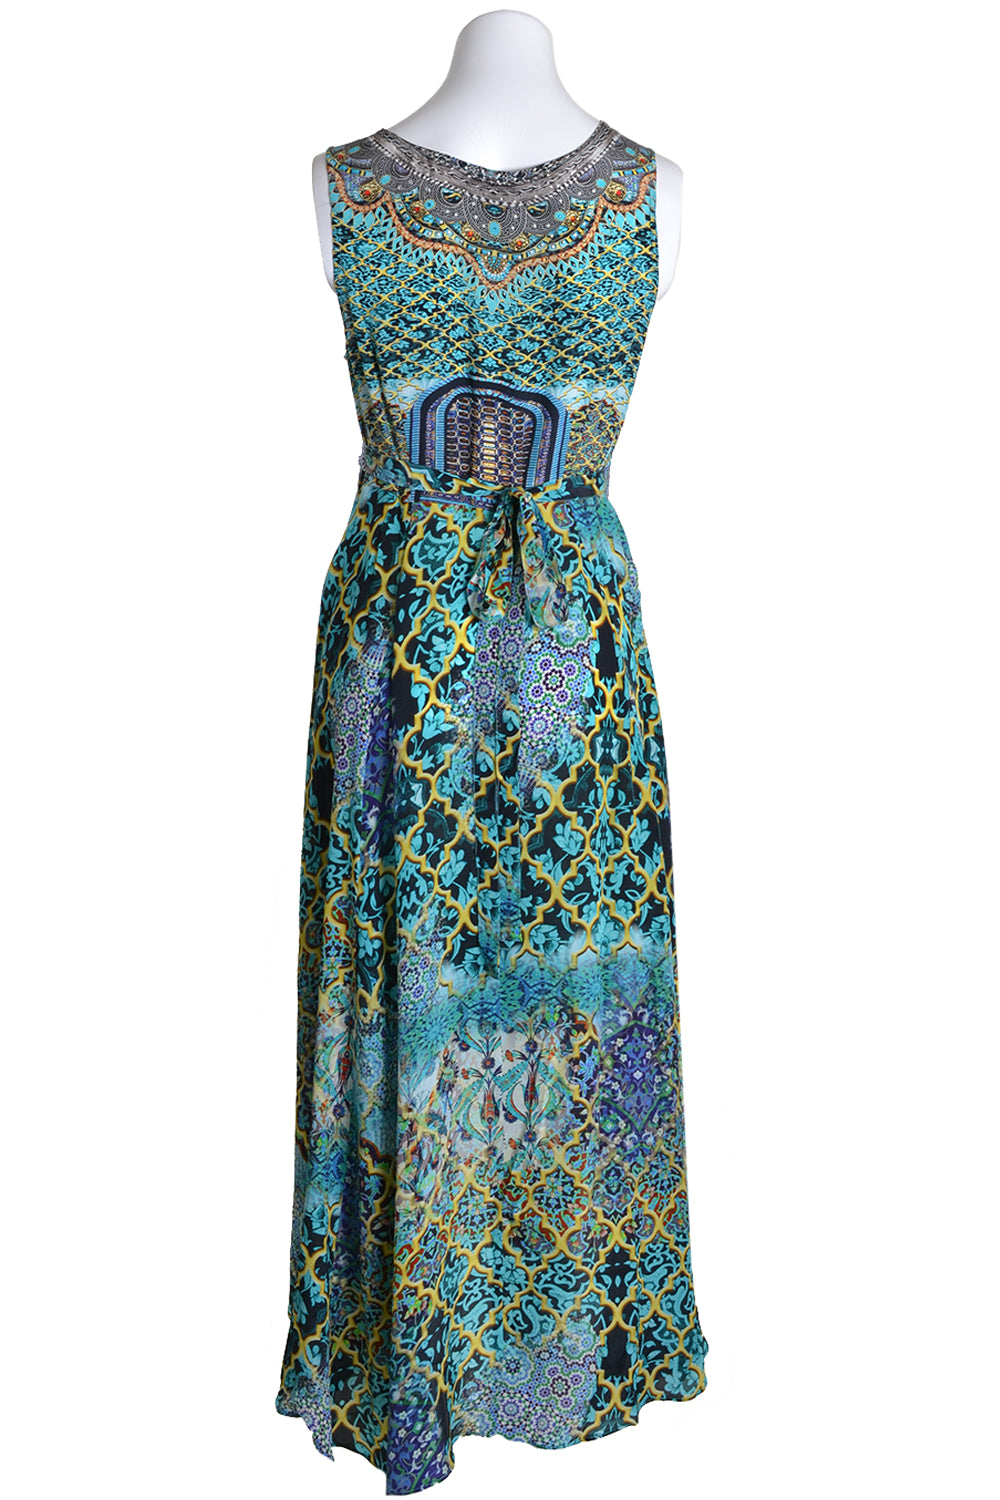 INOA Inoa Dress WRAP DR Long Back Marrakesh Turquoise Turquoise